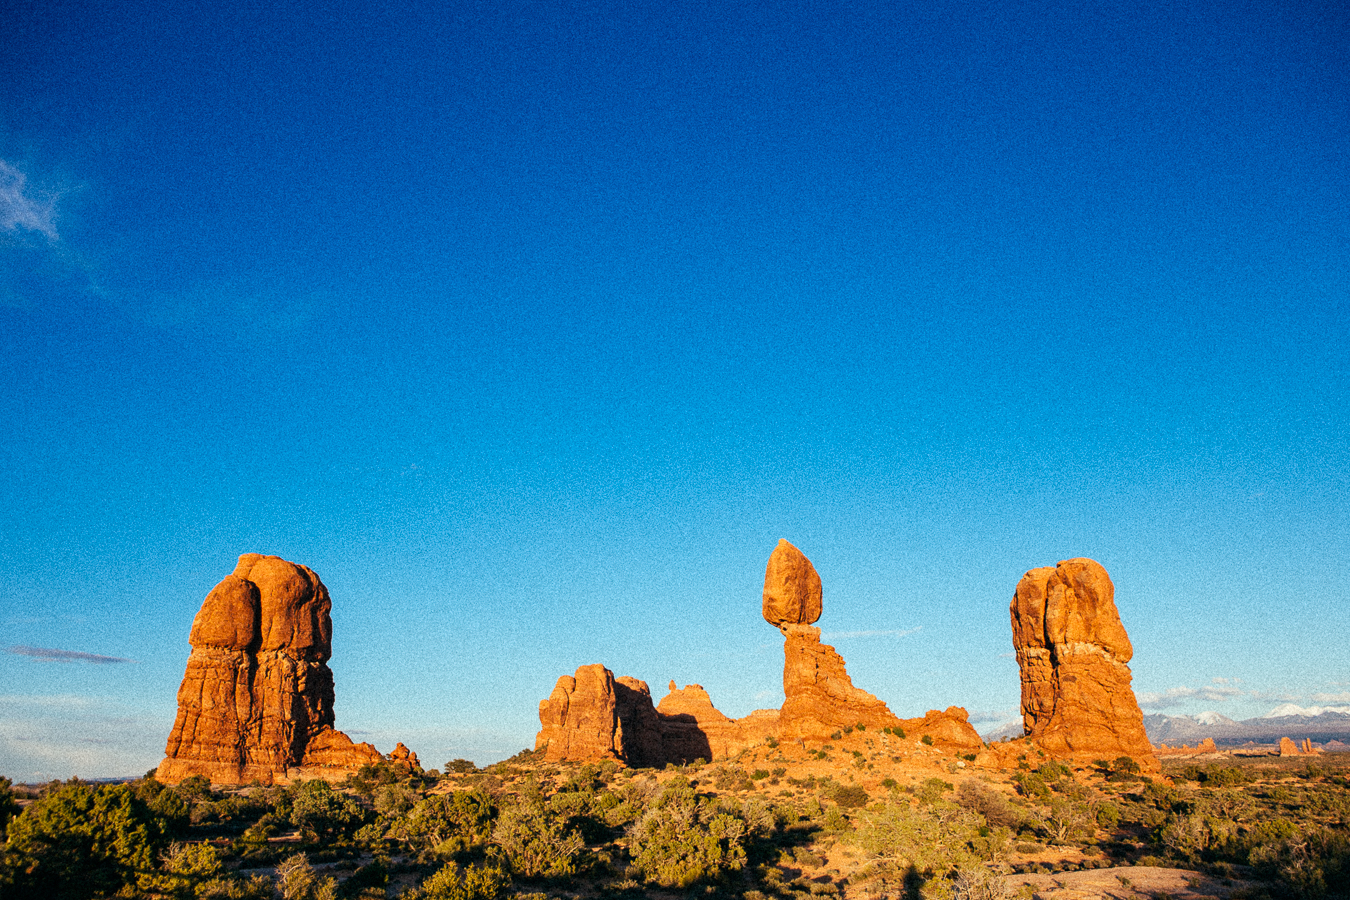 I photographeda hundred different scenes of Balanced Rock. I'll give you a slideshow someday if you ask.